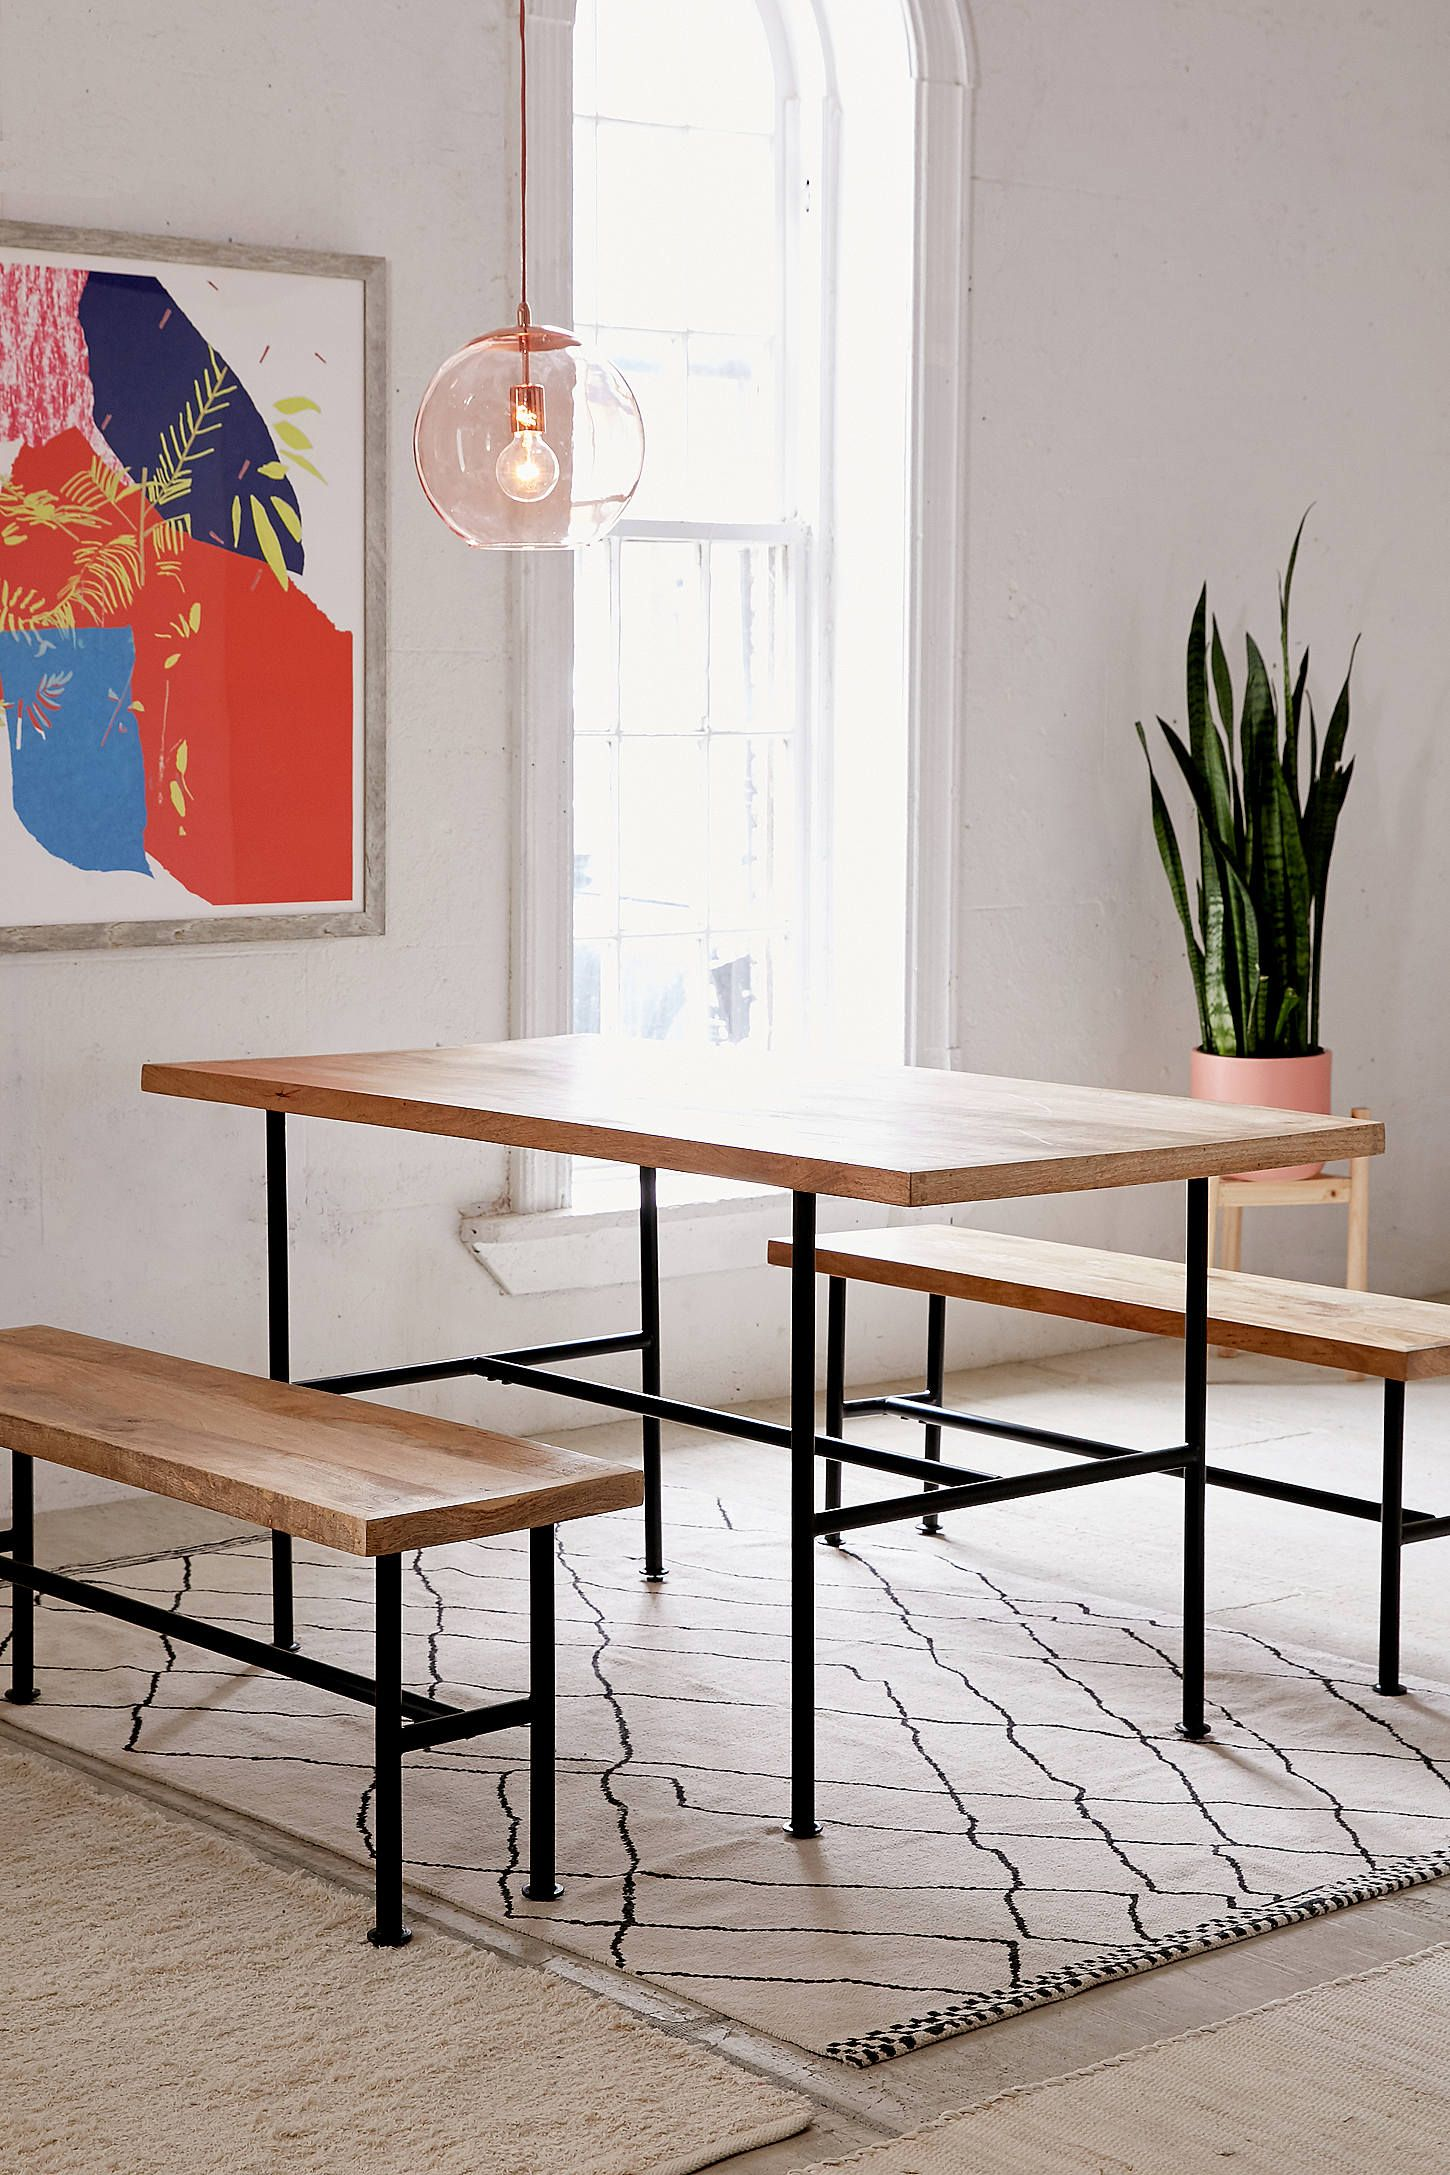 Kendall Pipe Dining Table  Pipes Apartment Living And Apartments Brilliant Kendall Dining Room Inspiration